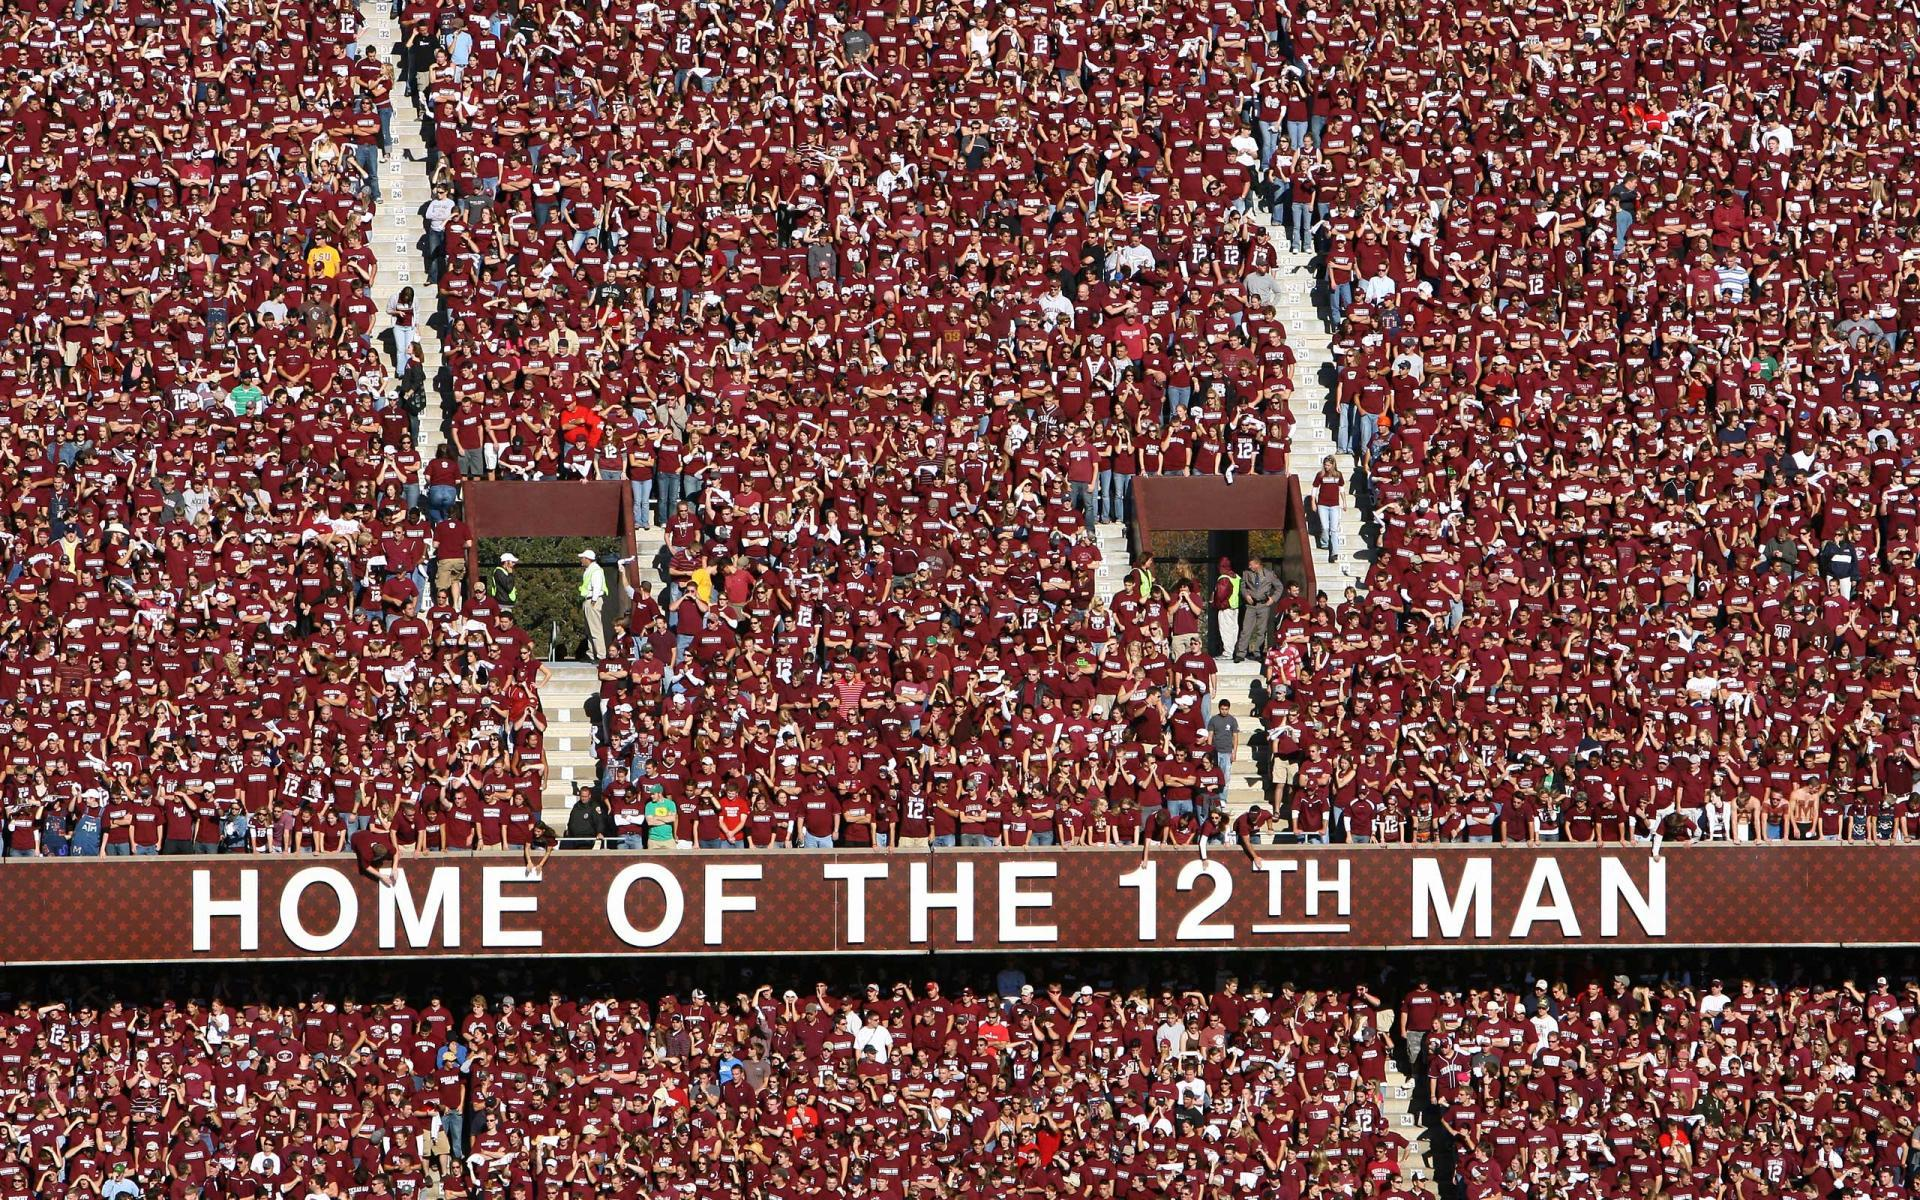 Kylefieldaggies_widescreen_jpg_1920x1200